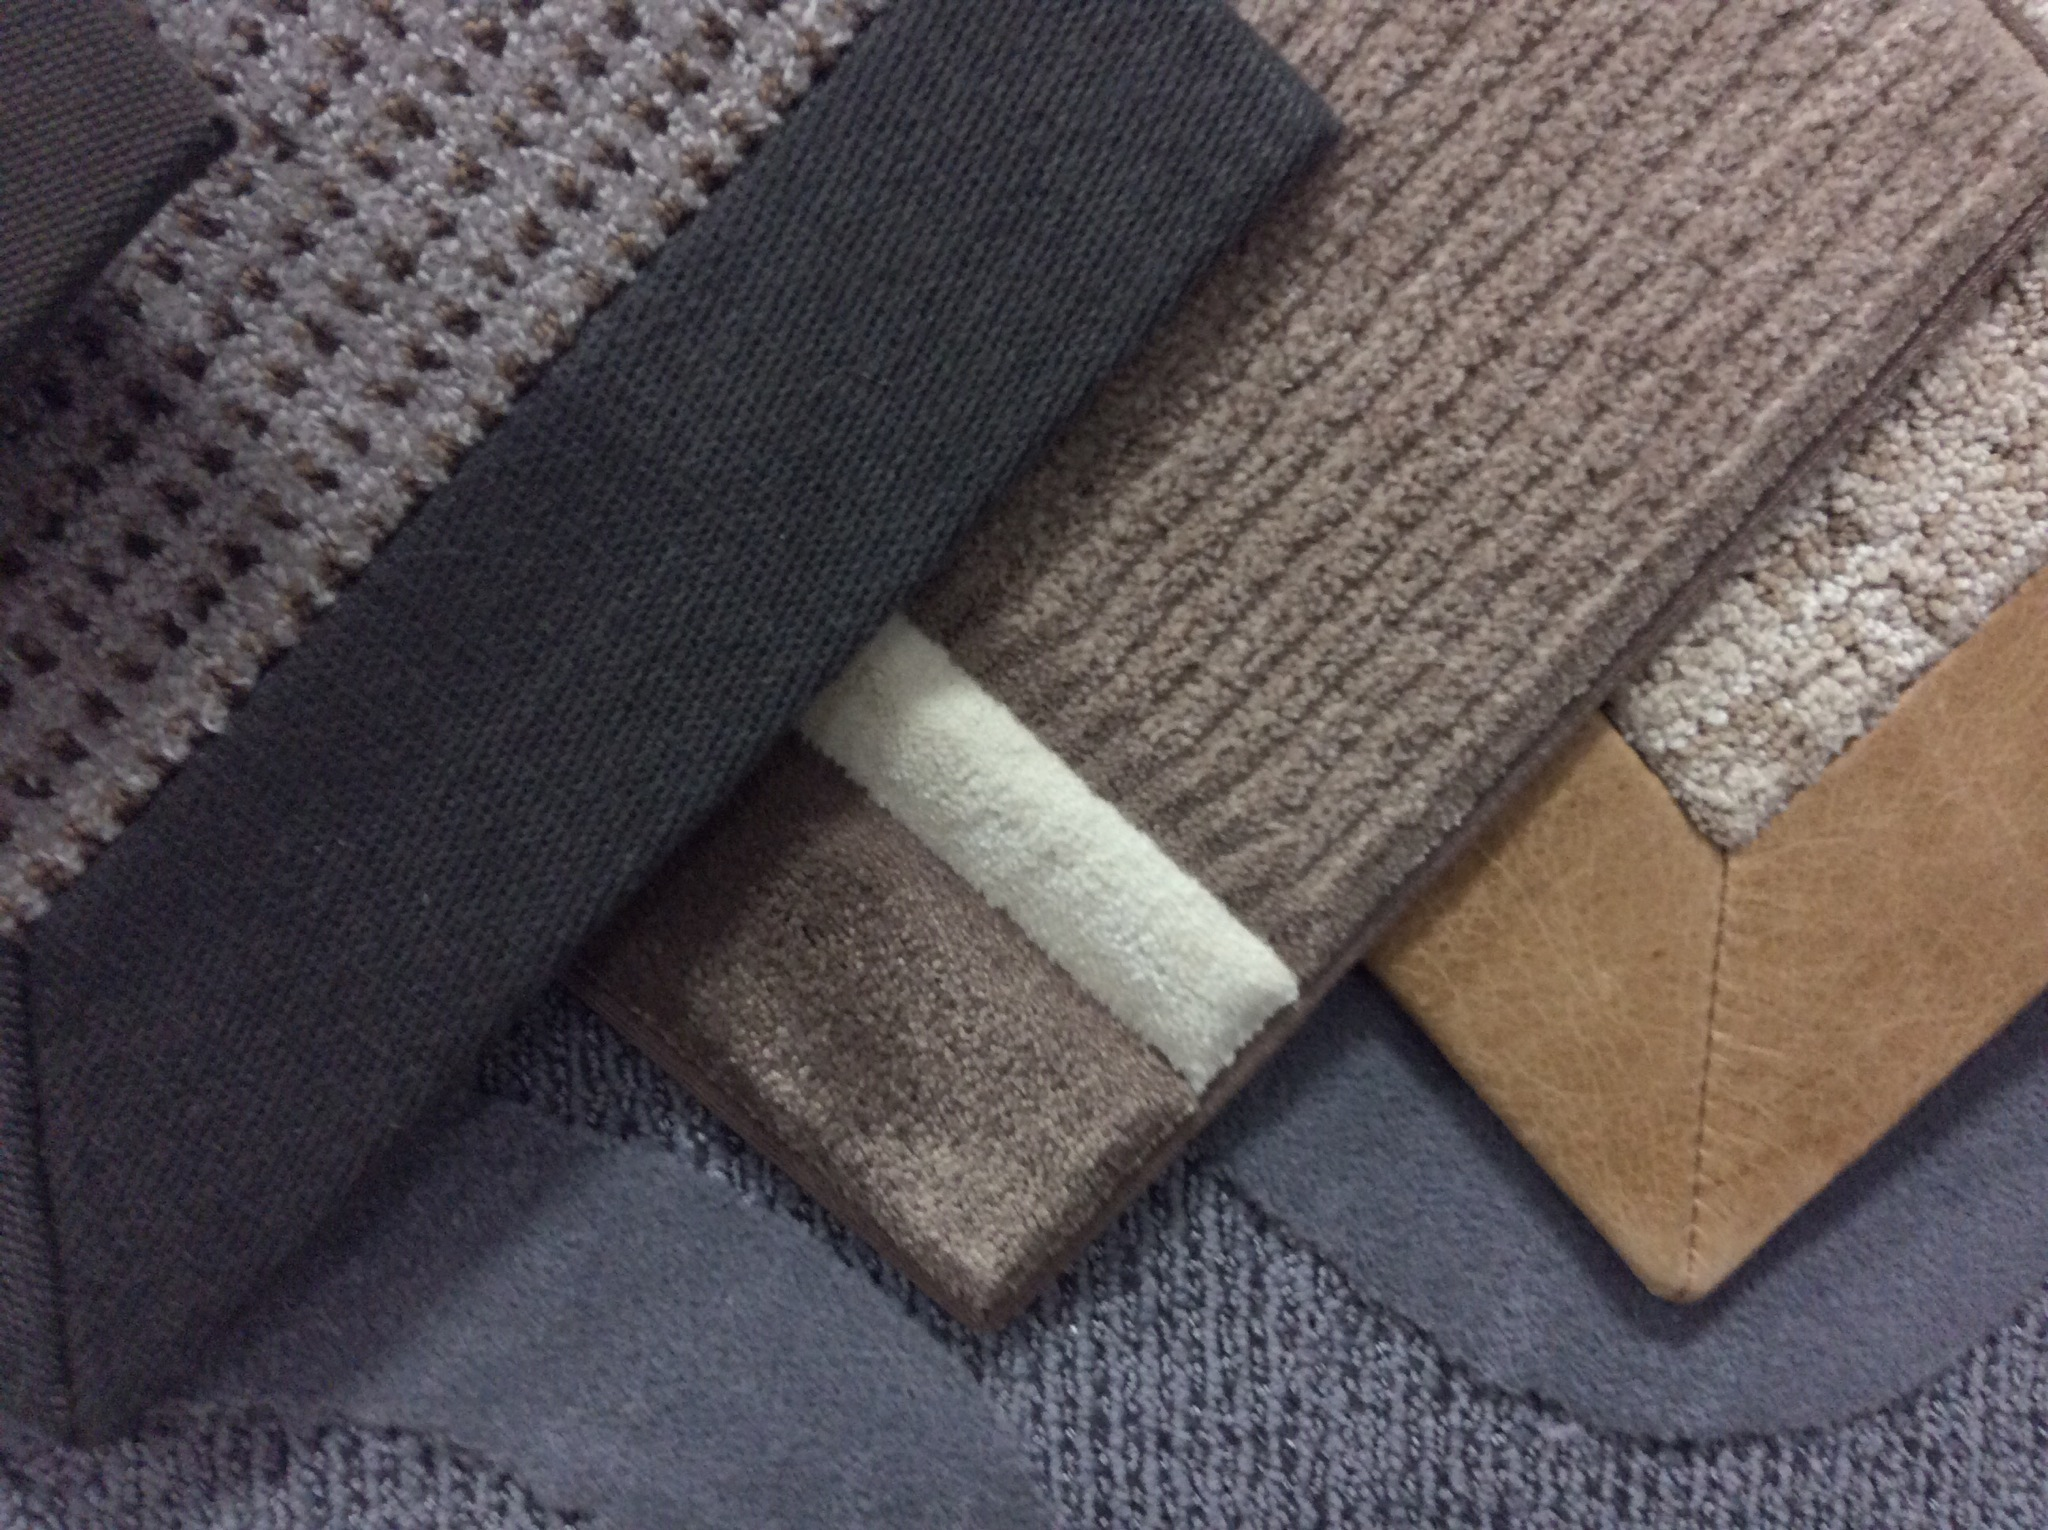 The Dixie Group With Fabrica Fine Carpets Masland Carpets At